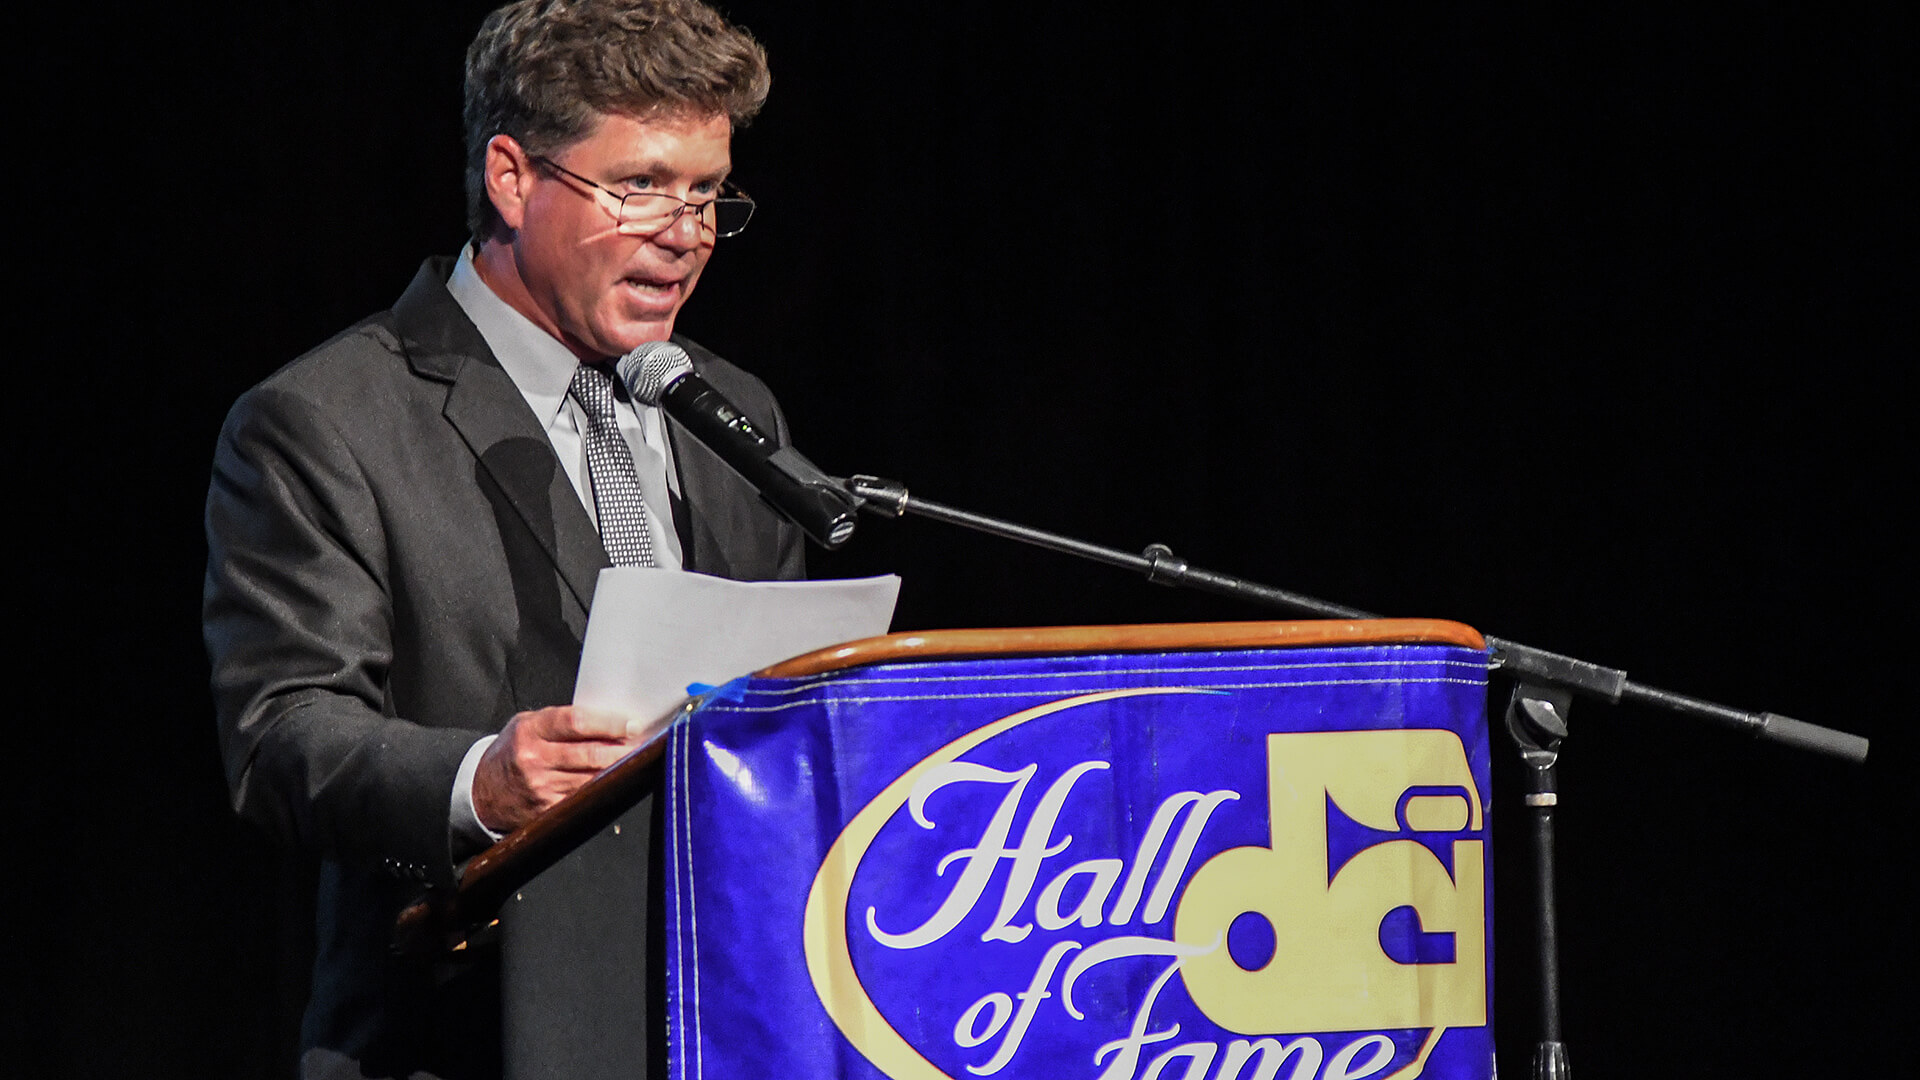 2017 DCI Hall of Fame induction speeches